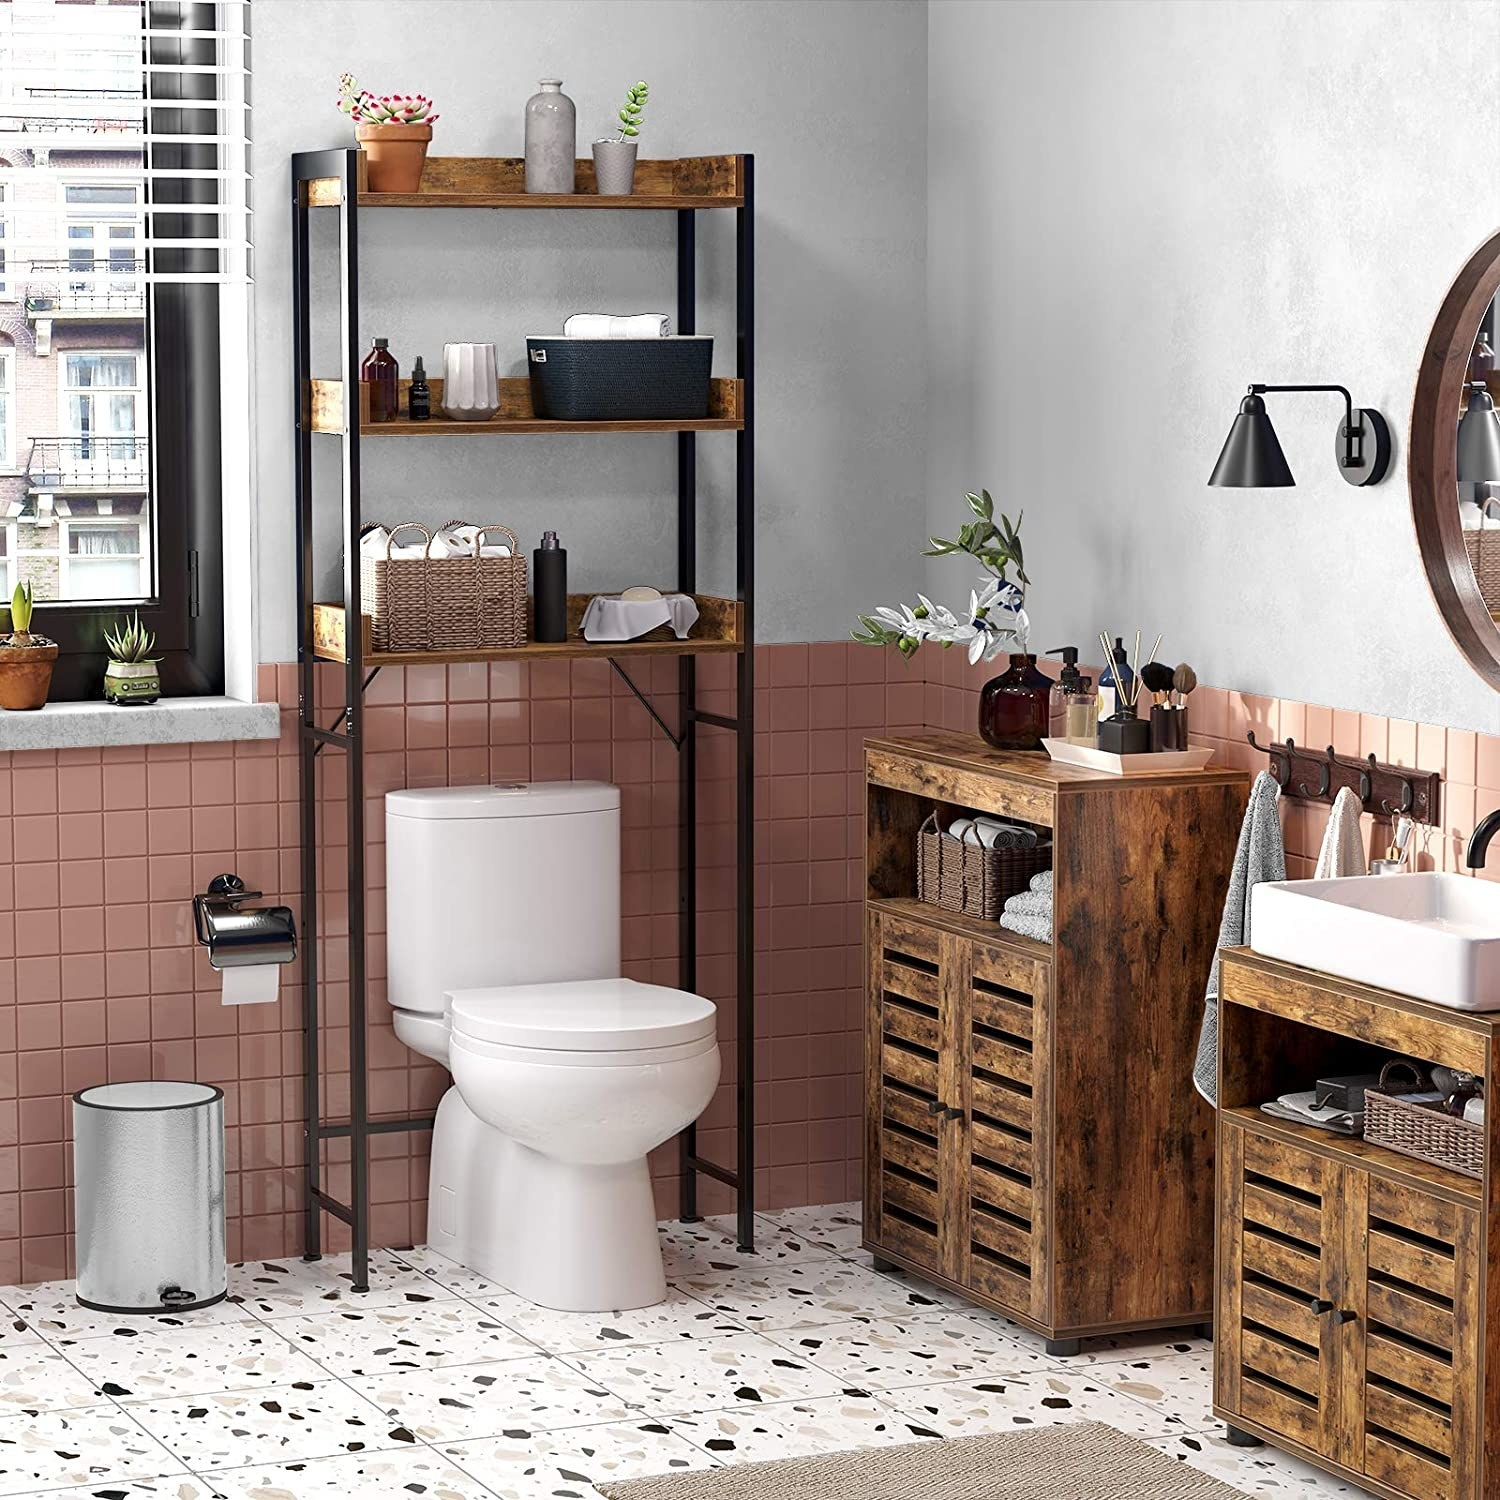 The rustic wooden shelving unit over a toilet in a wood-accented bathroom